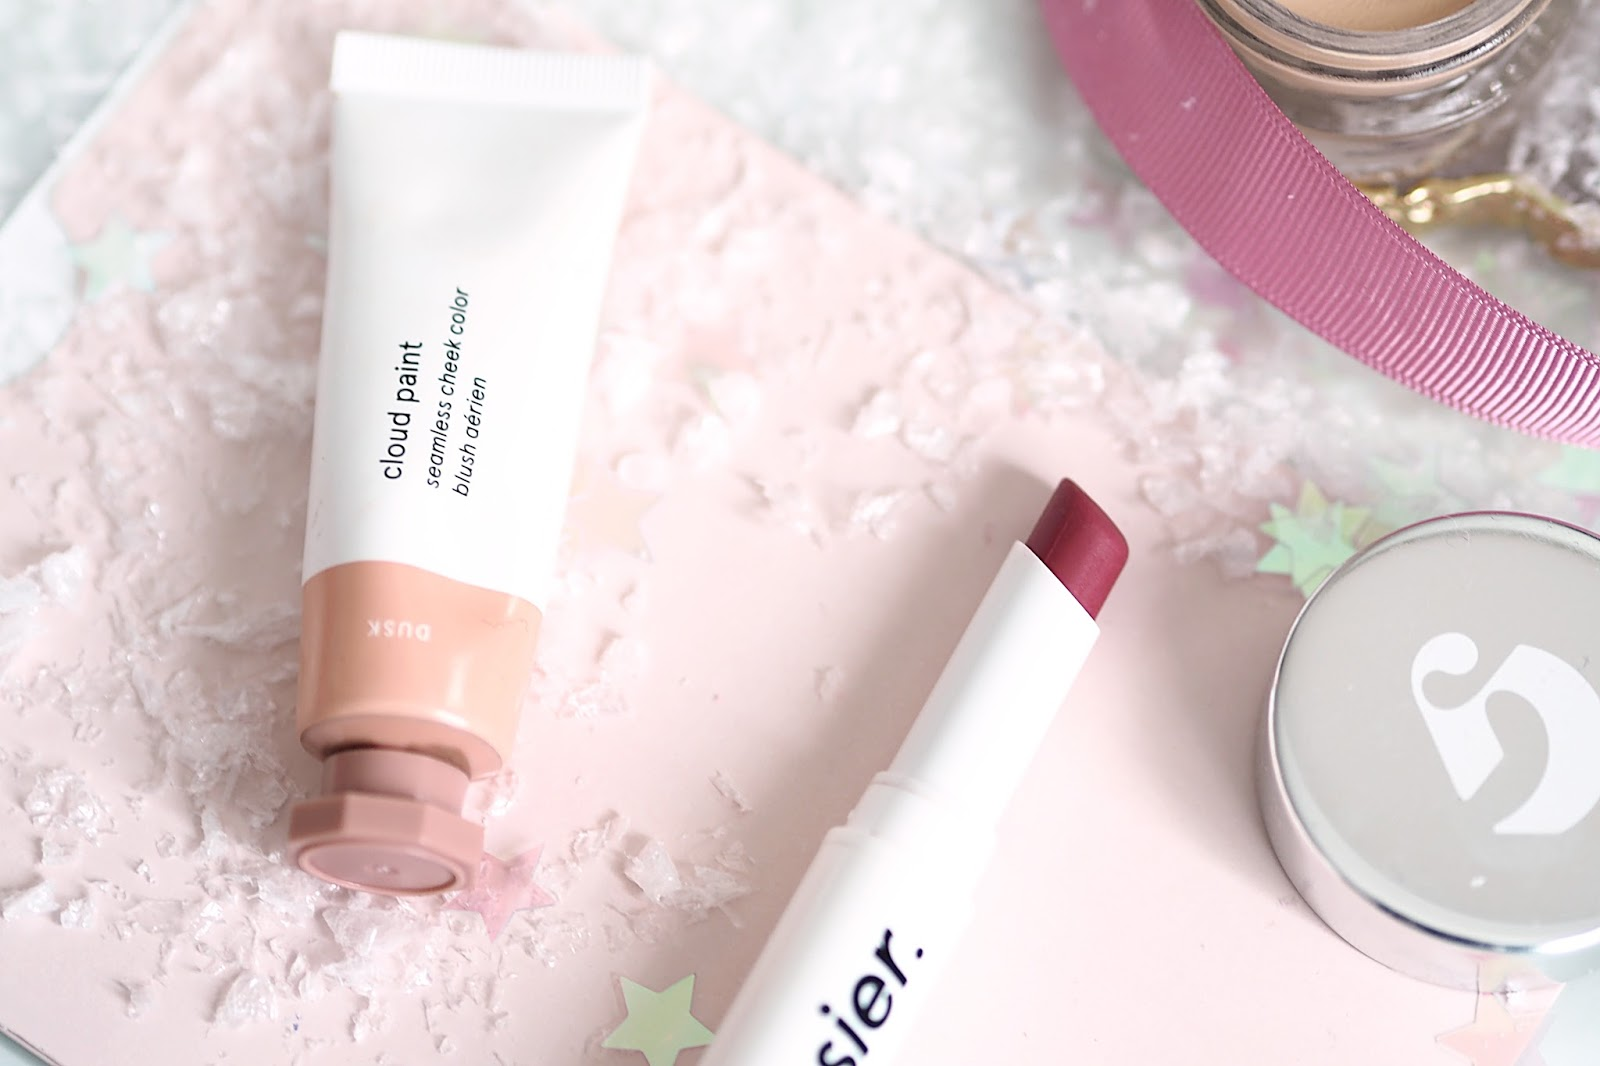 Glossier Cloud paint dusk